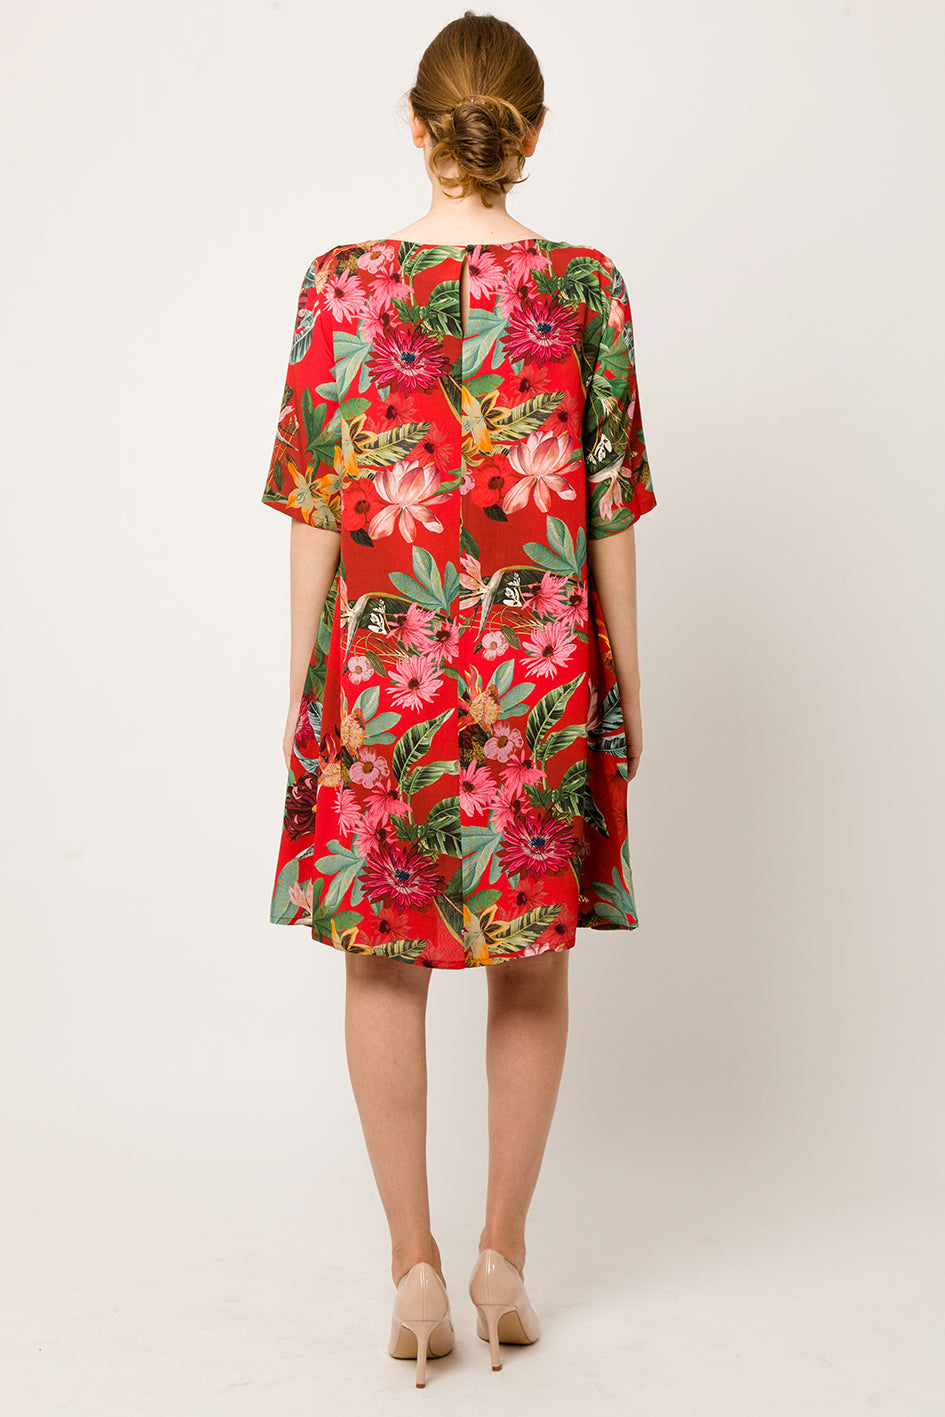 A-line red flower Dress with pleat